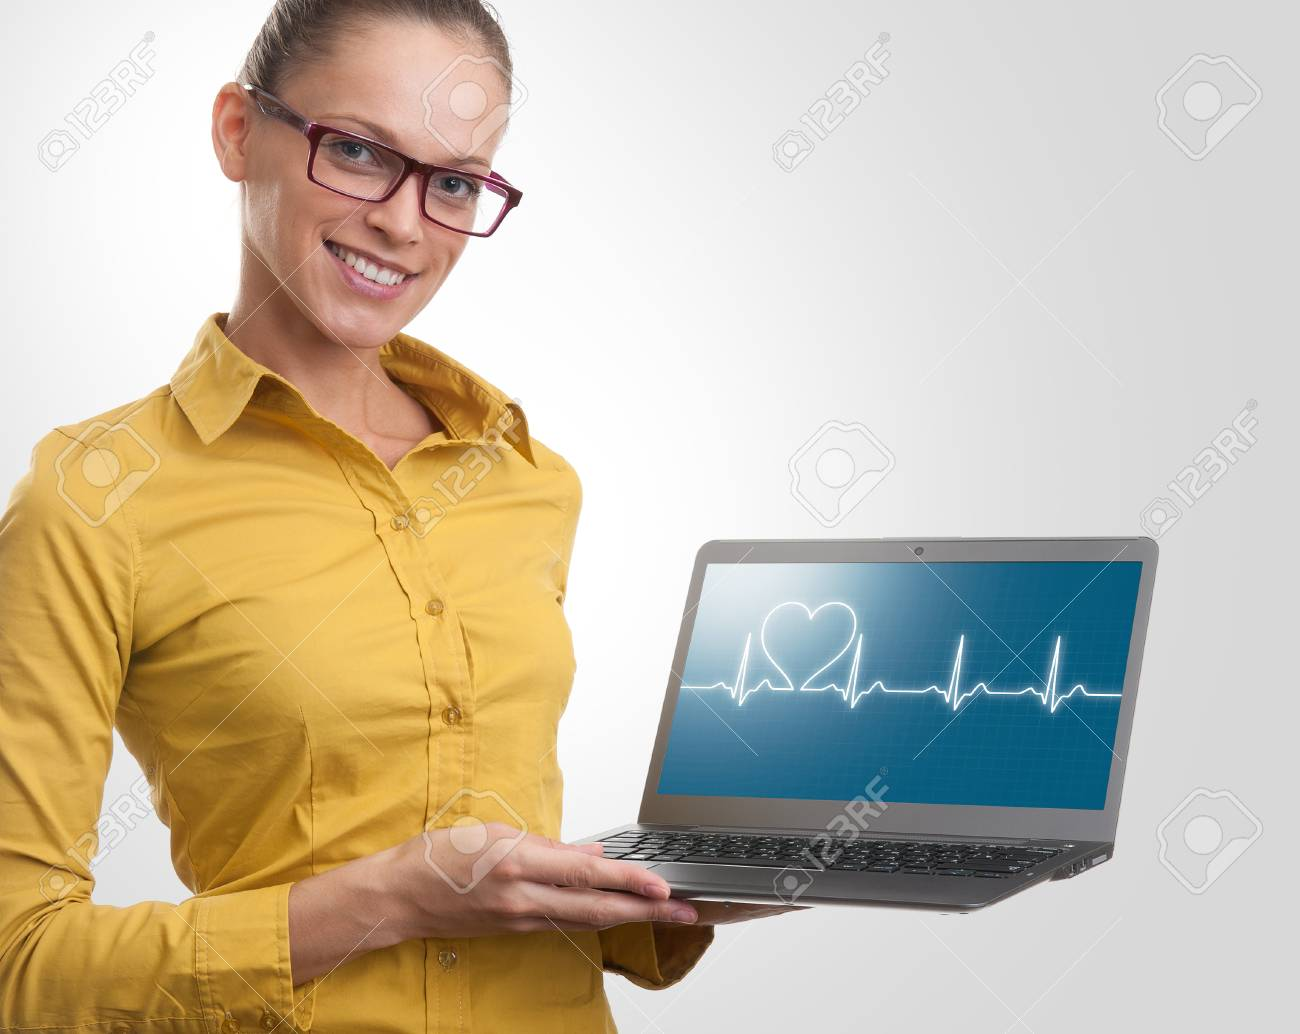 beautiful woman showing a laptop. Health care concept Stock Photo - 22350124